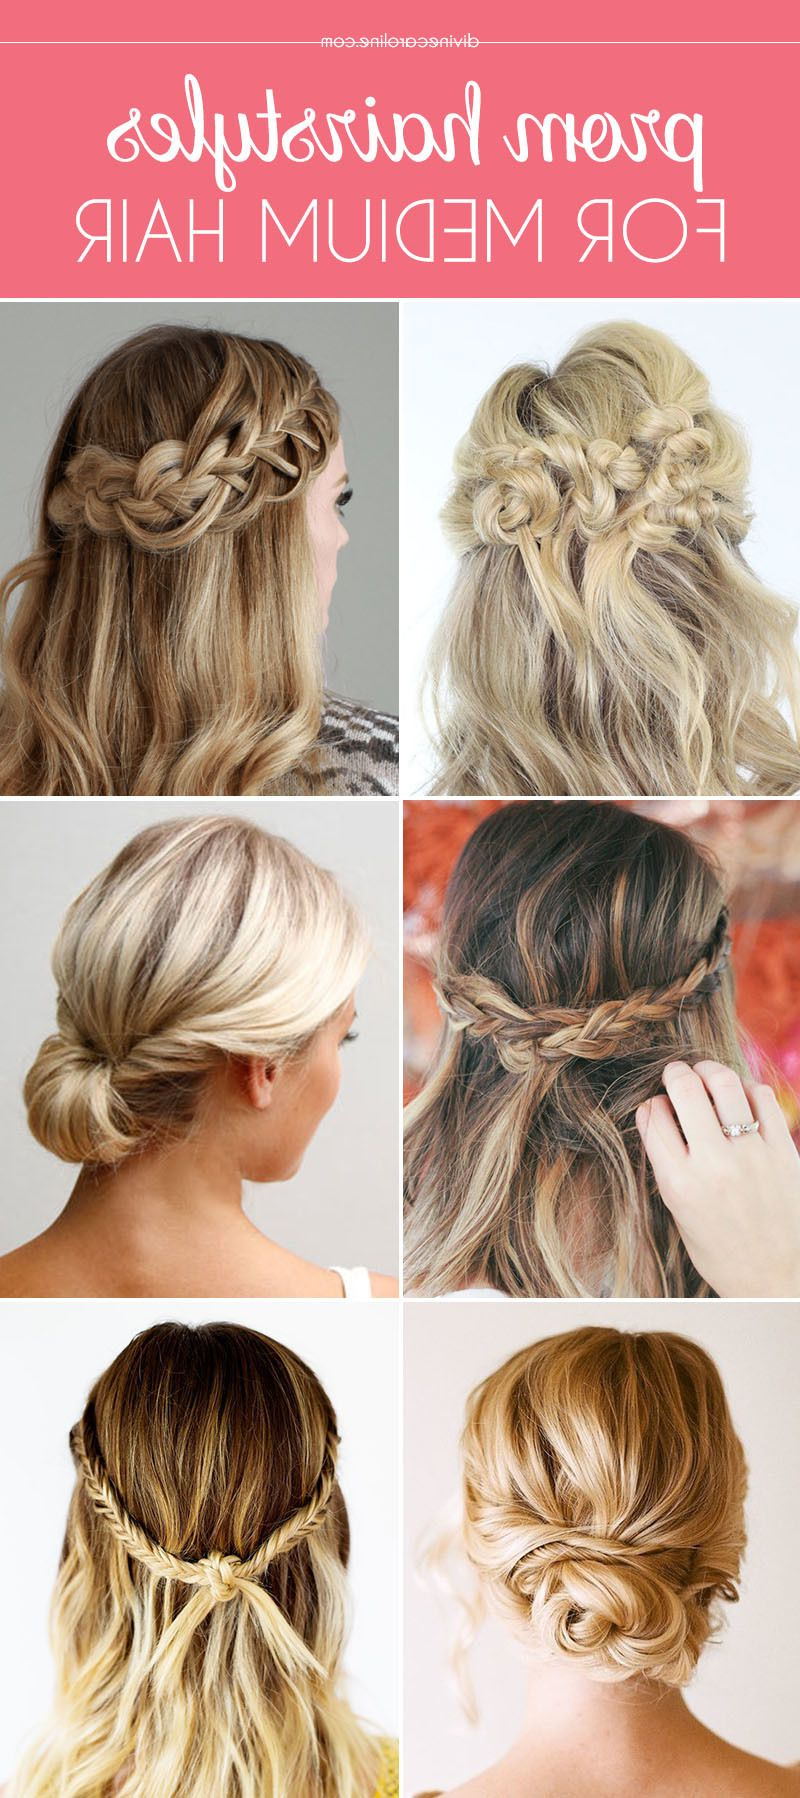 Widely Used Messy Braided Prom Updos In Our Favorite Prom Hairstyles For Medium Length Hair (View 13 of 20)